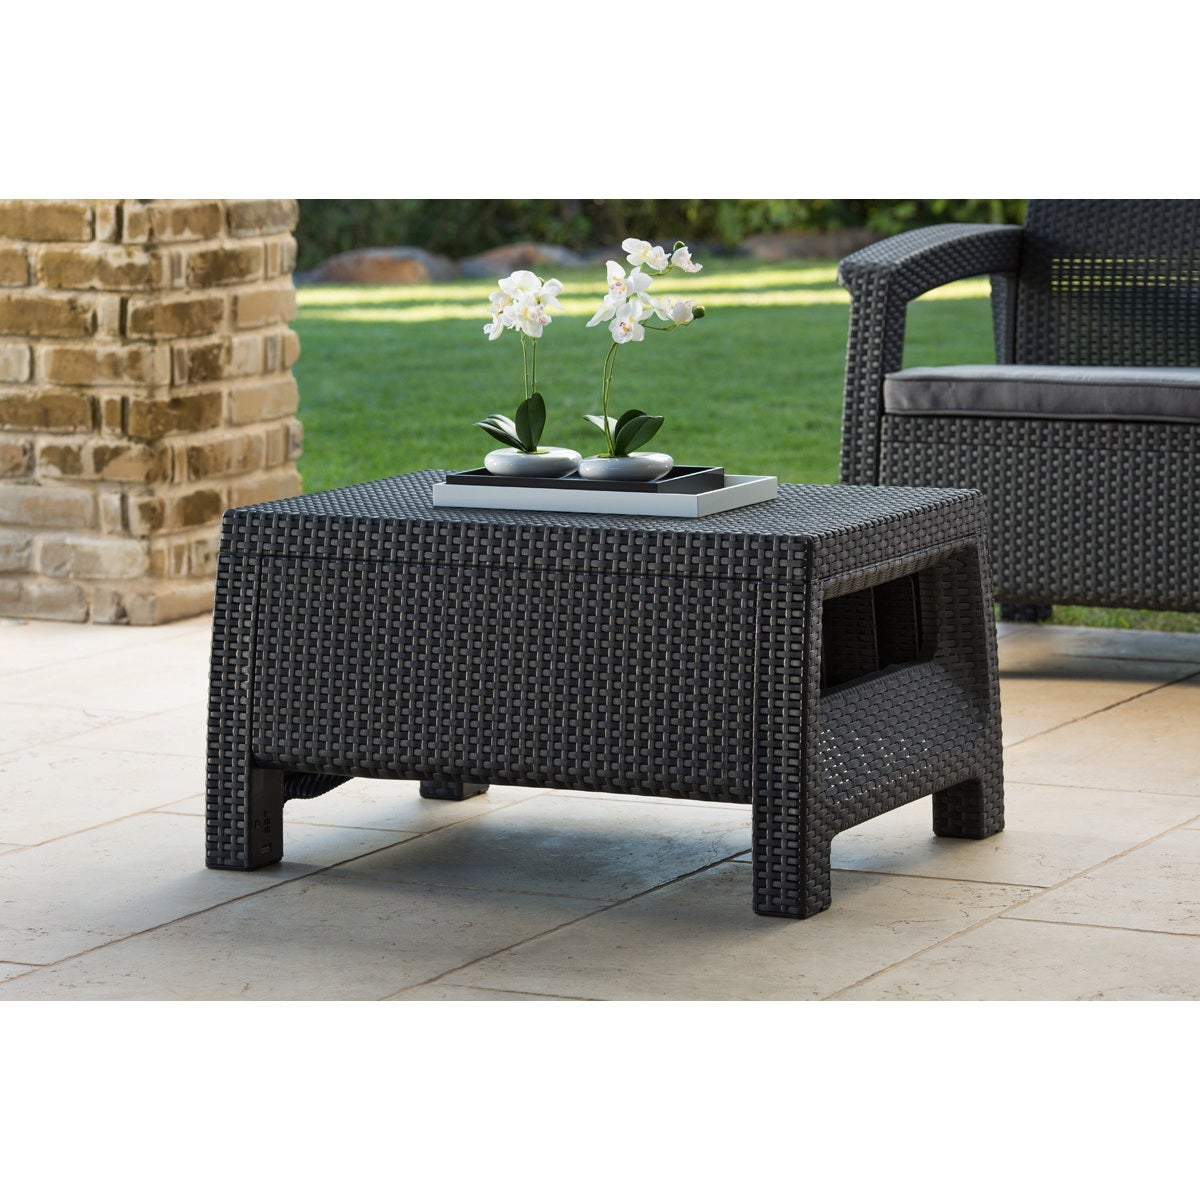 Keter Corfu Charcoal All-Weather Outdoor Garden Patio Coffee Table ...